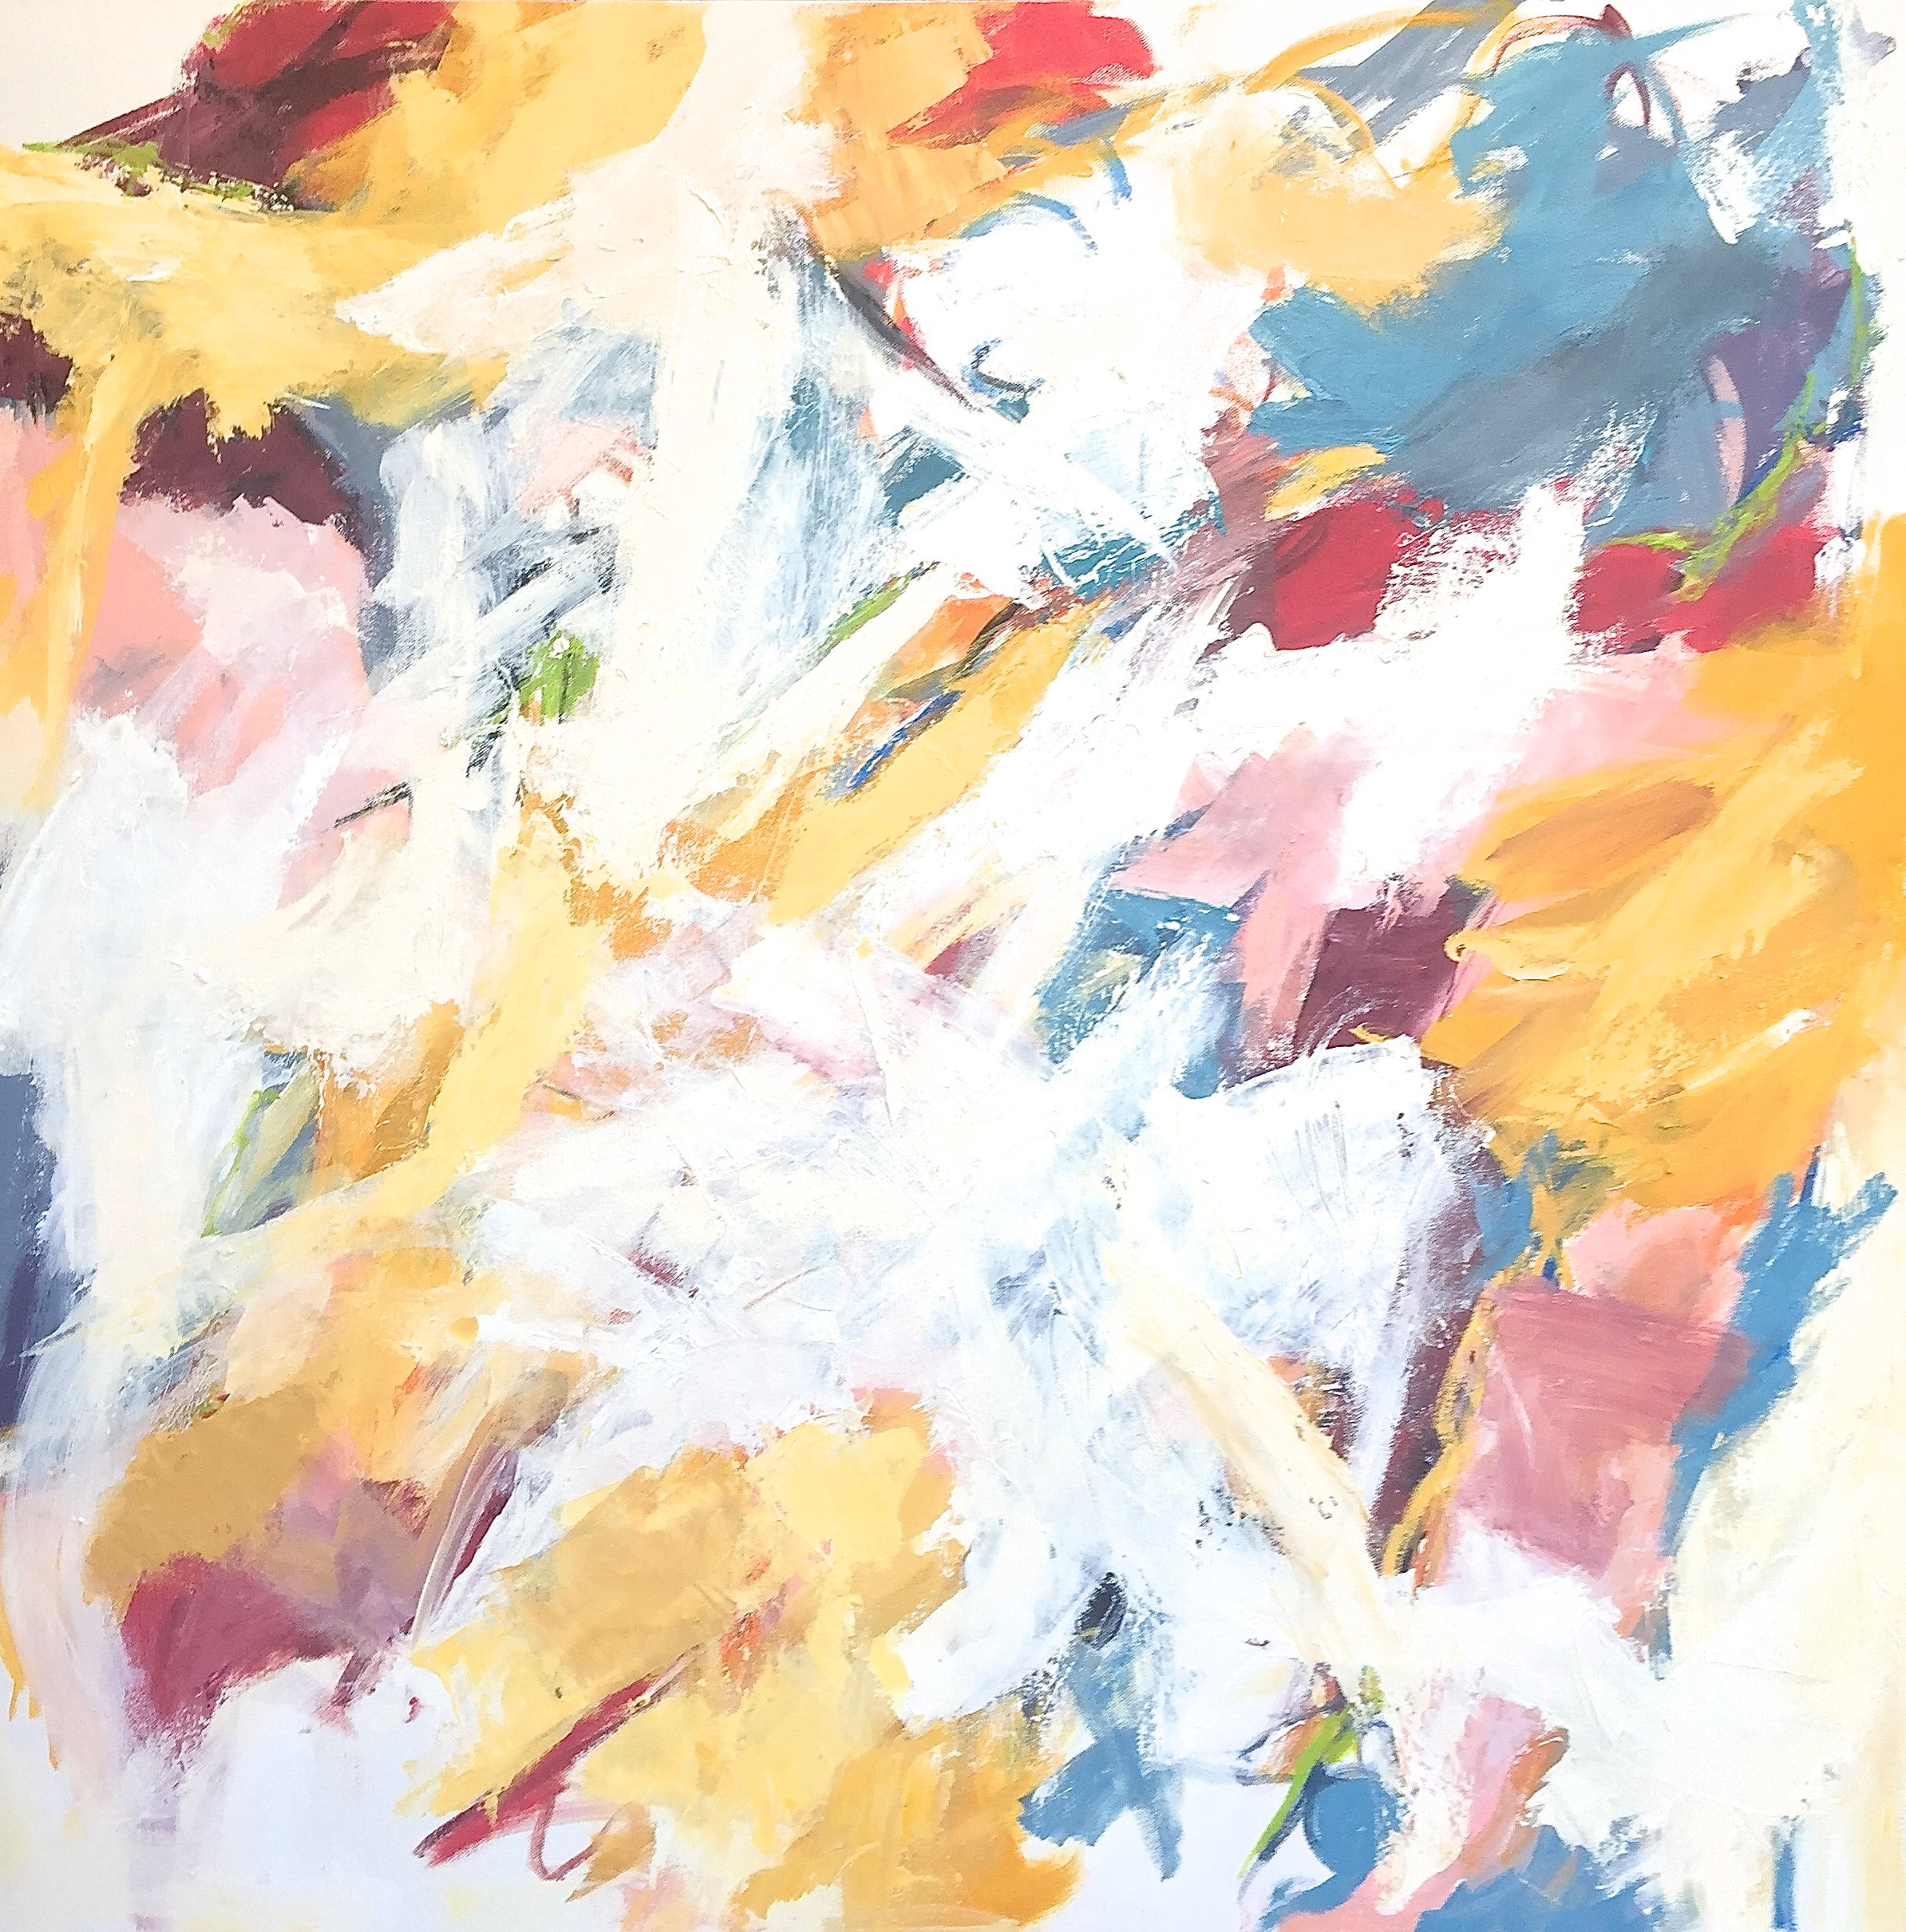 """""""Strawberry Fields Forever"""" Abstraction White, Burgundy, Blue/Gray, Yellow Ochre"""